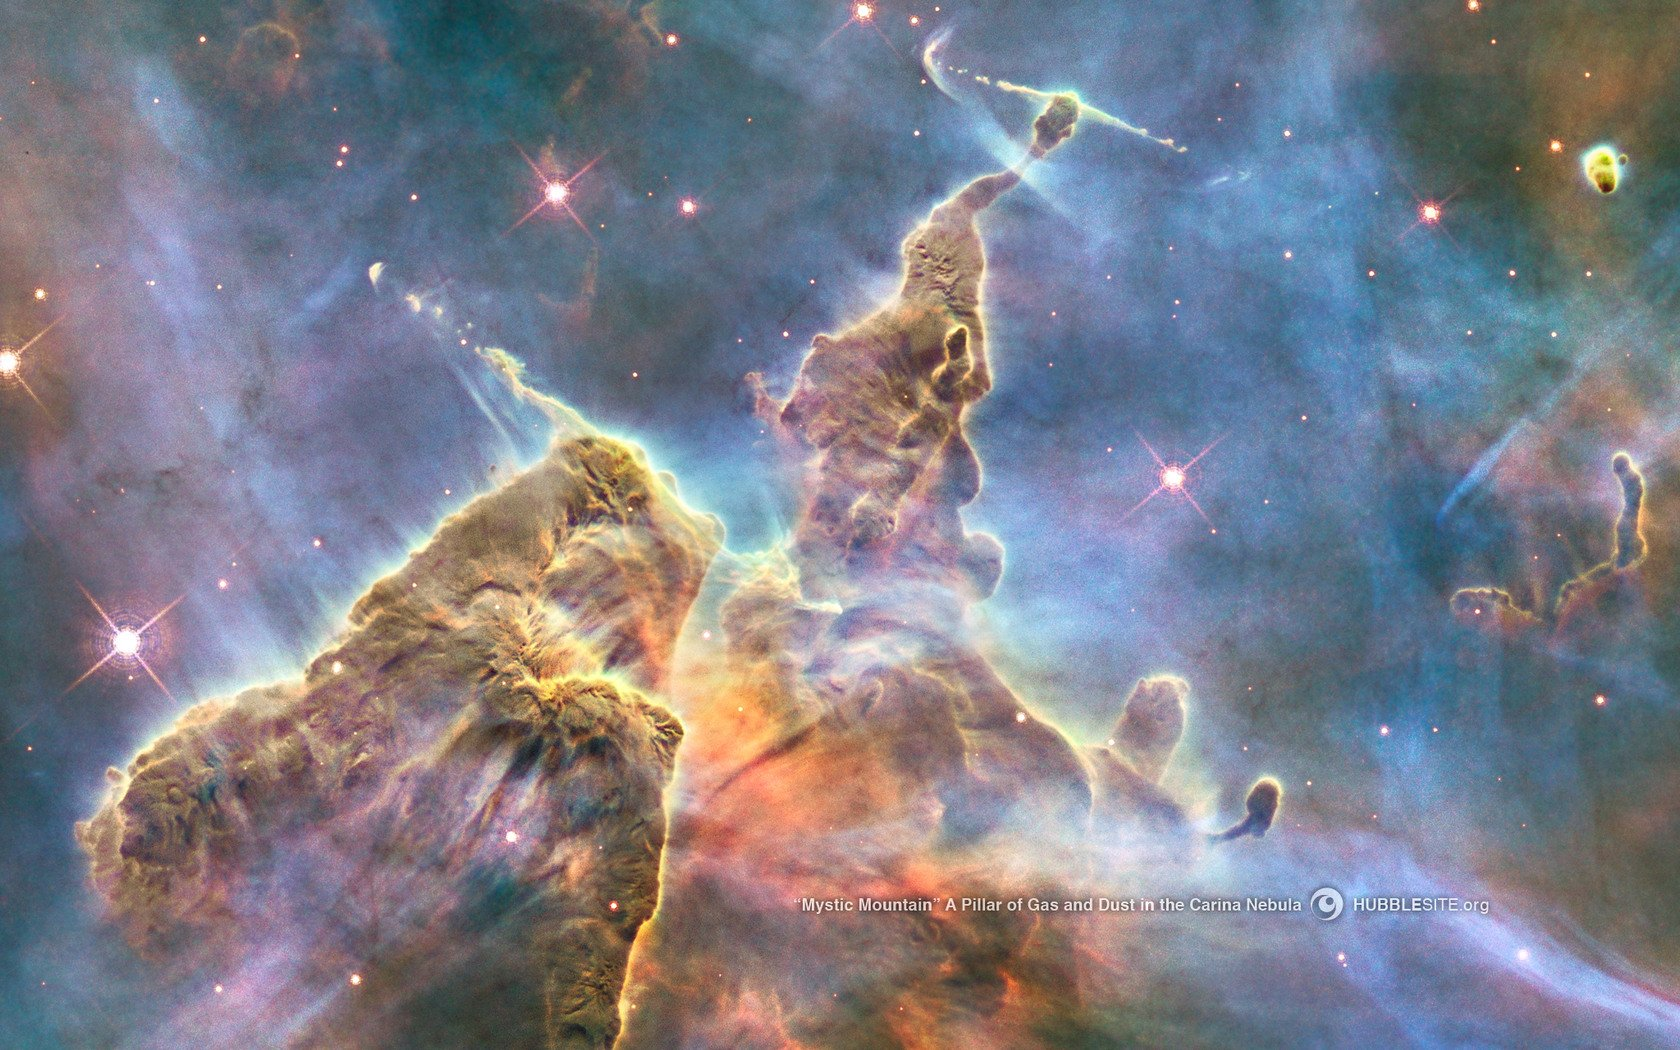 Space nasa hubble carina nebula mystic mountain wallpaper 1680x1050 1680x1050